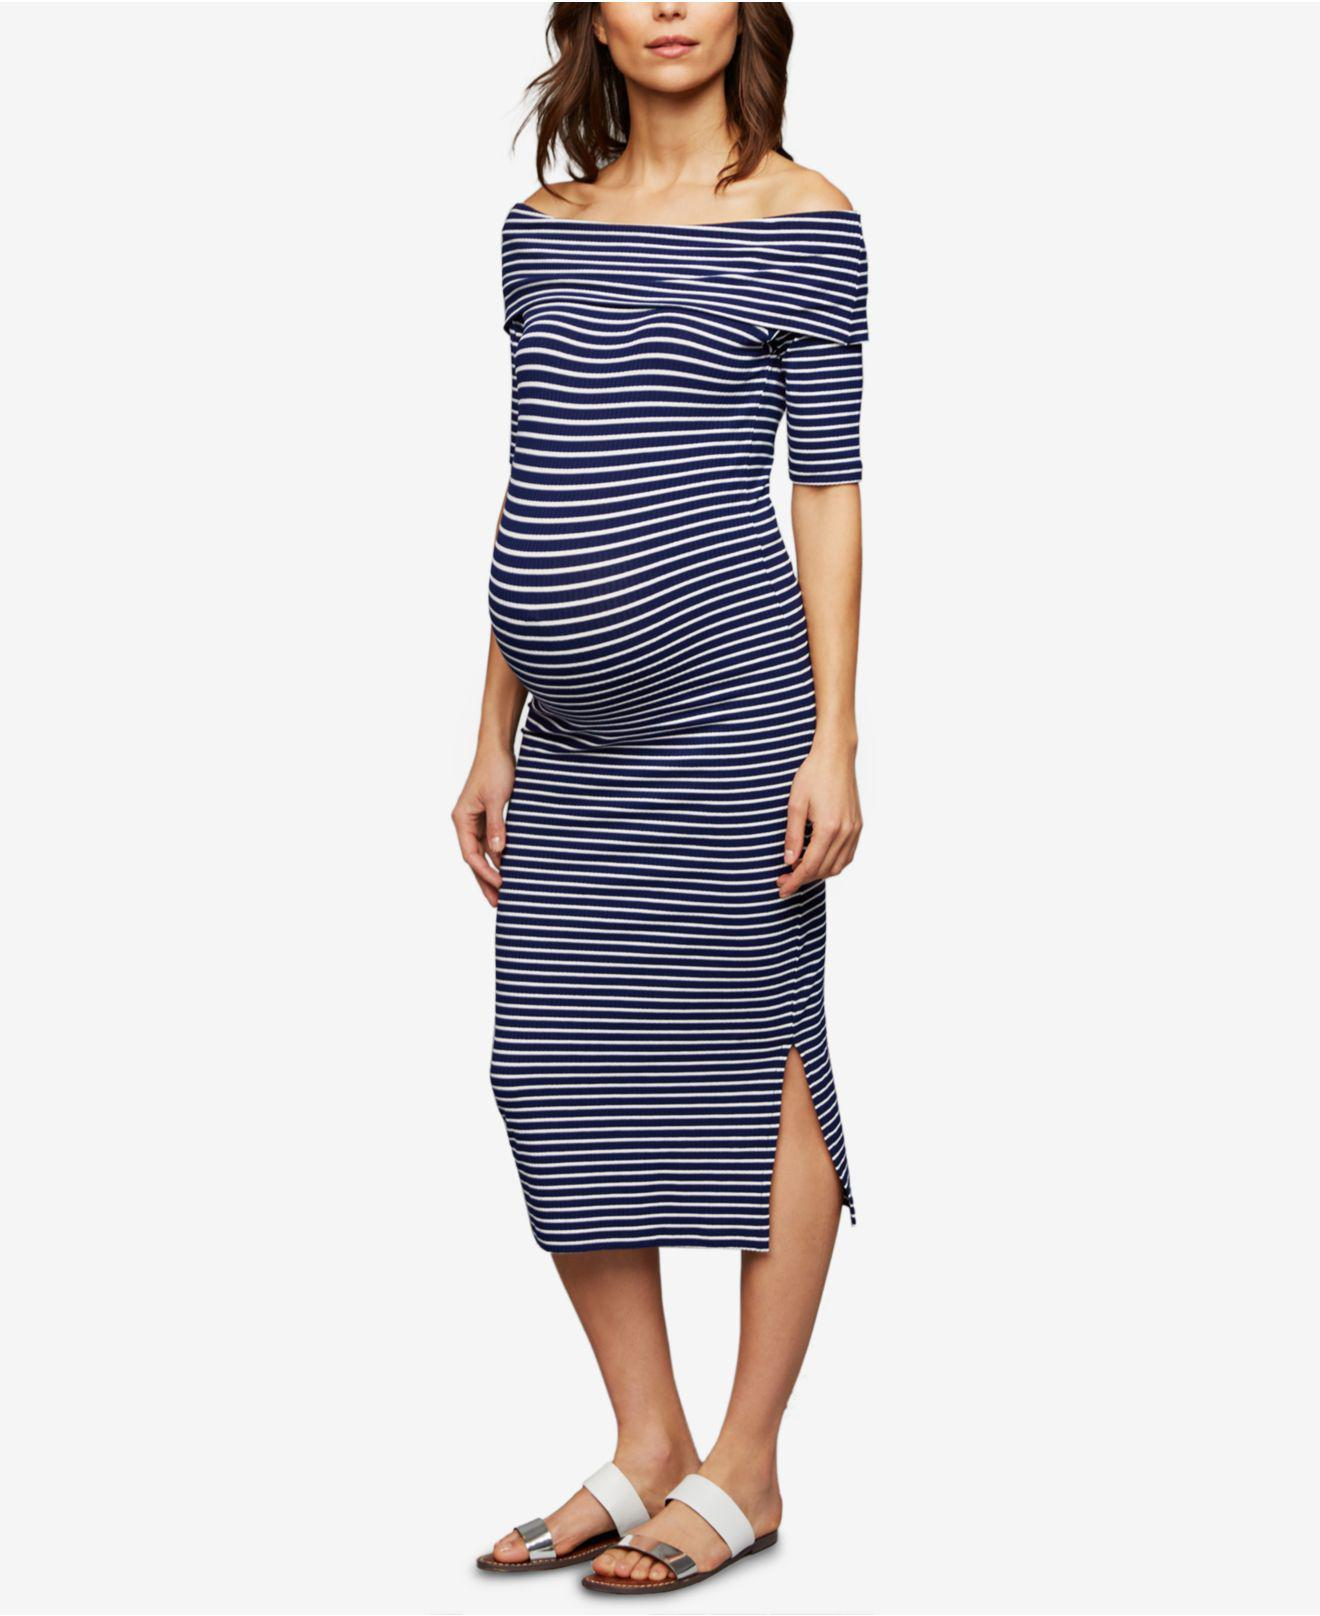 6301bc13a24 Lyst - Isabella Oliver Maternity Off-the-shoulder Dress in Blue